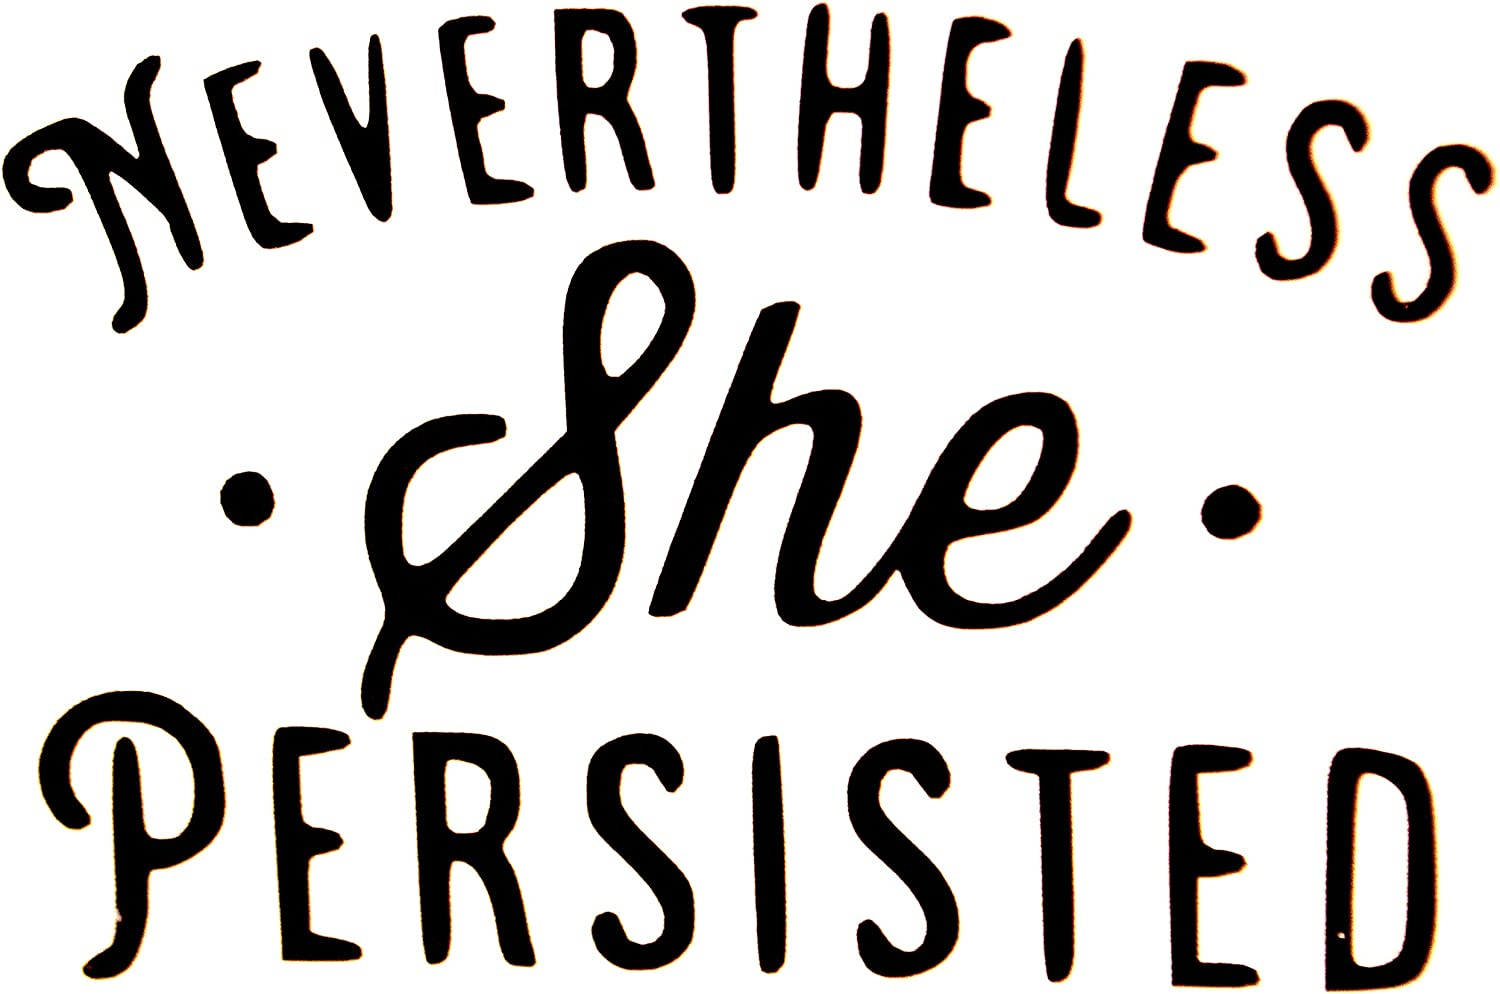 Black 3.5 X 2.5 inch SSND ,Vinyl Decal Sticker Nevertheless SHE Persisted